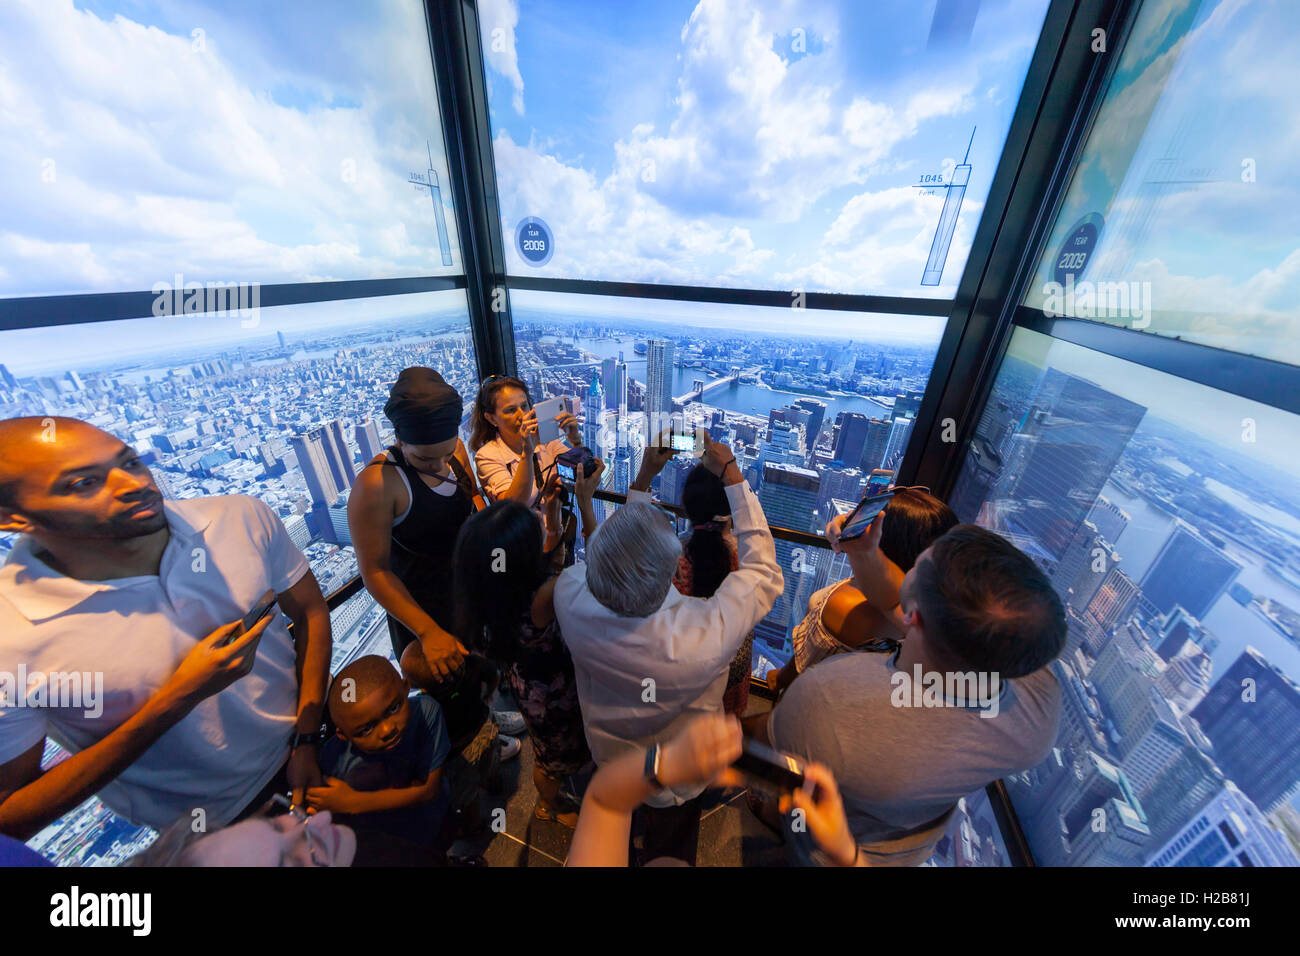 Riding in the Freedom Tower elevator to the top and surrounded by multimedia views of New York City. - Stock Image